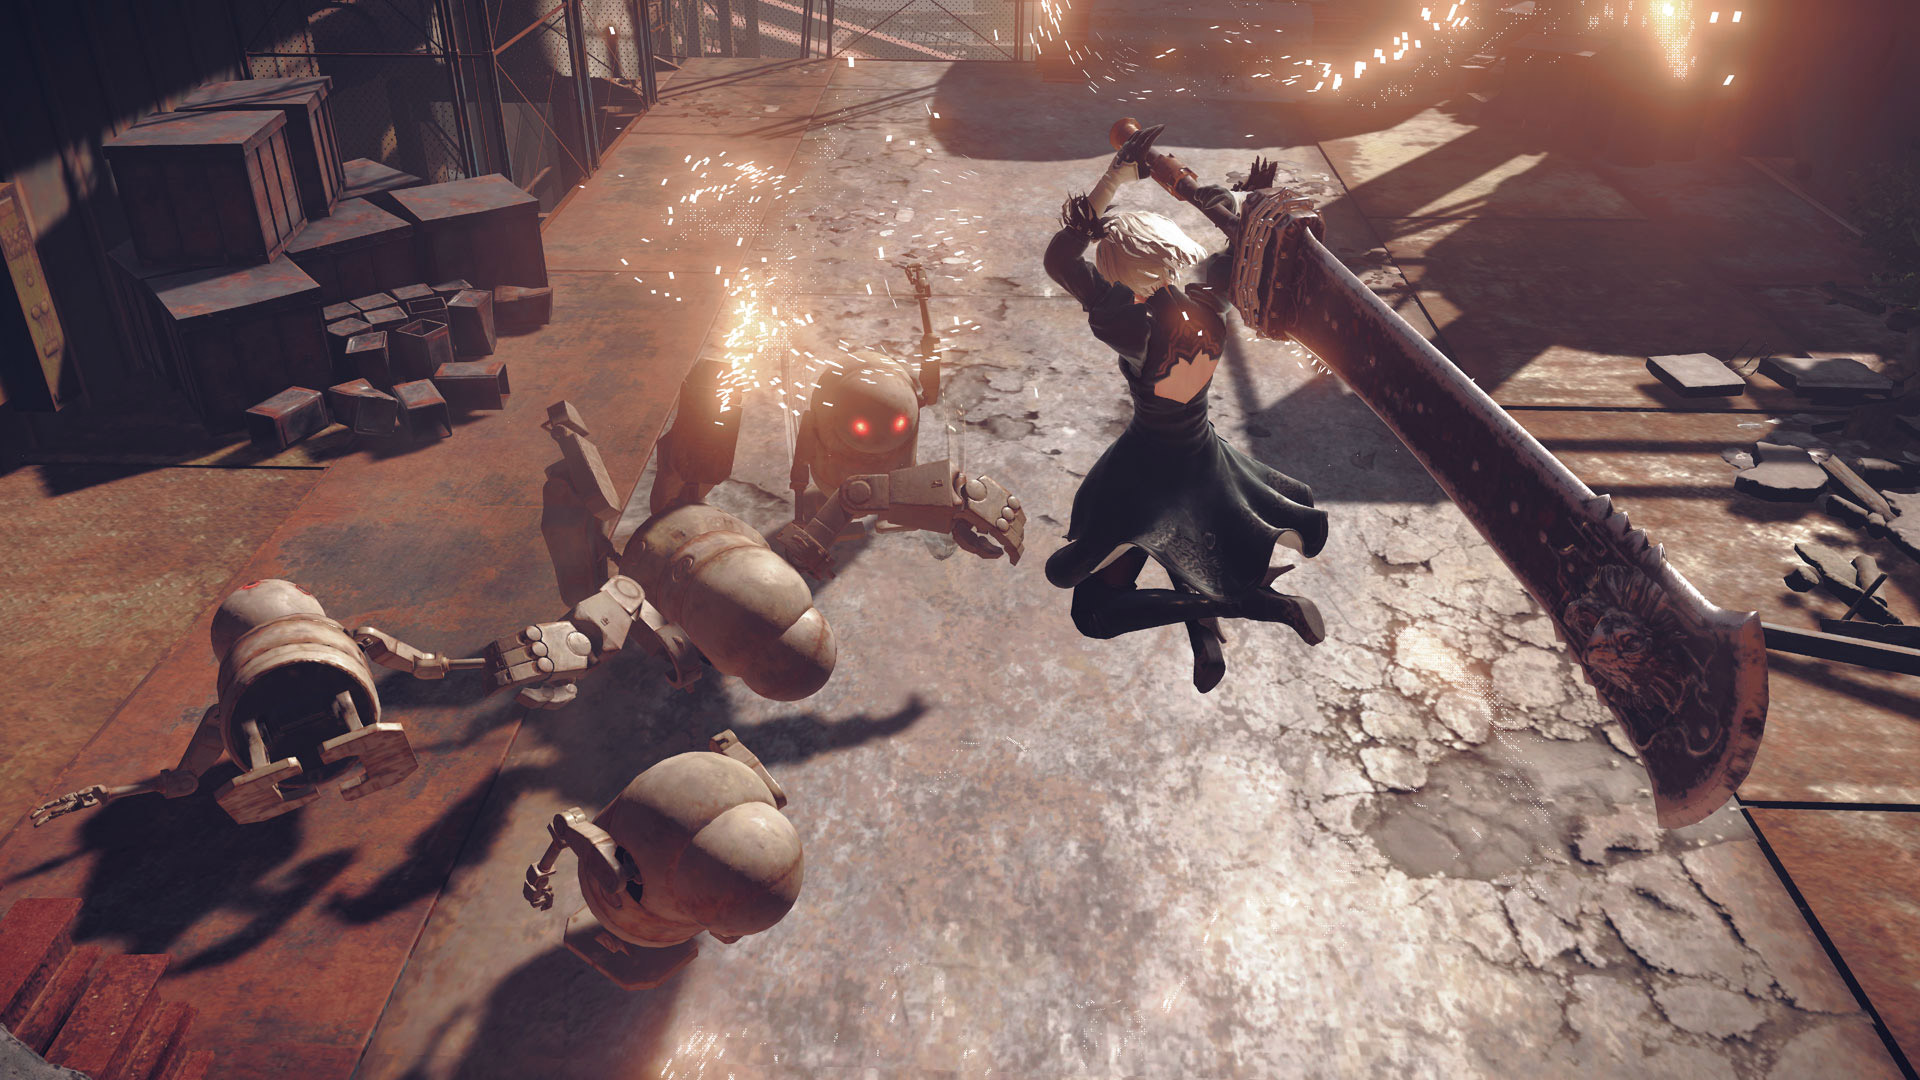 Best Game Nier Automata Wallpapers Nier Automata Game Of The